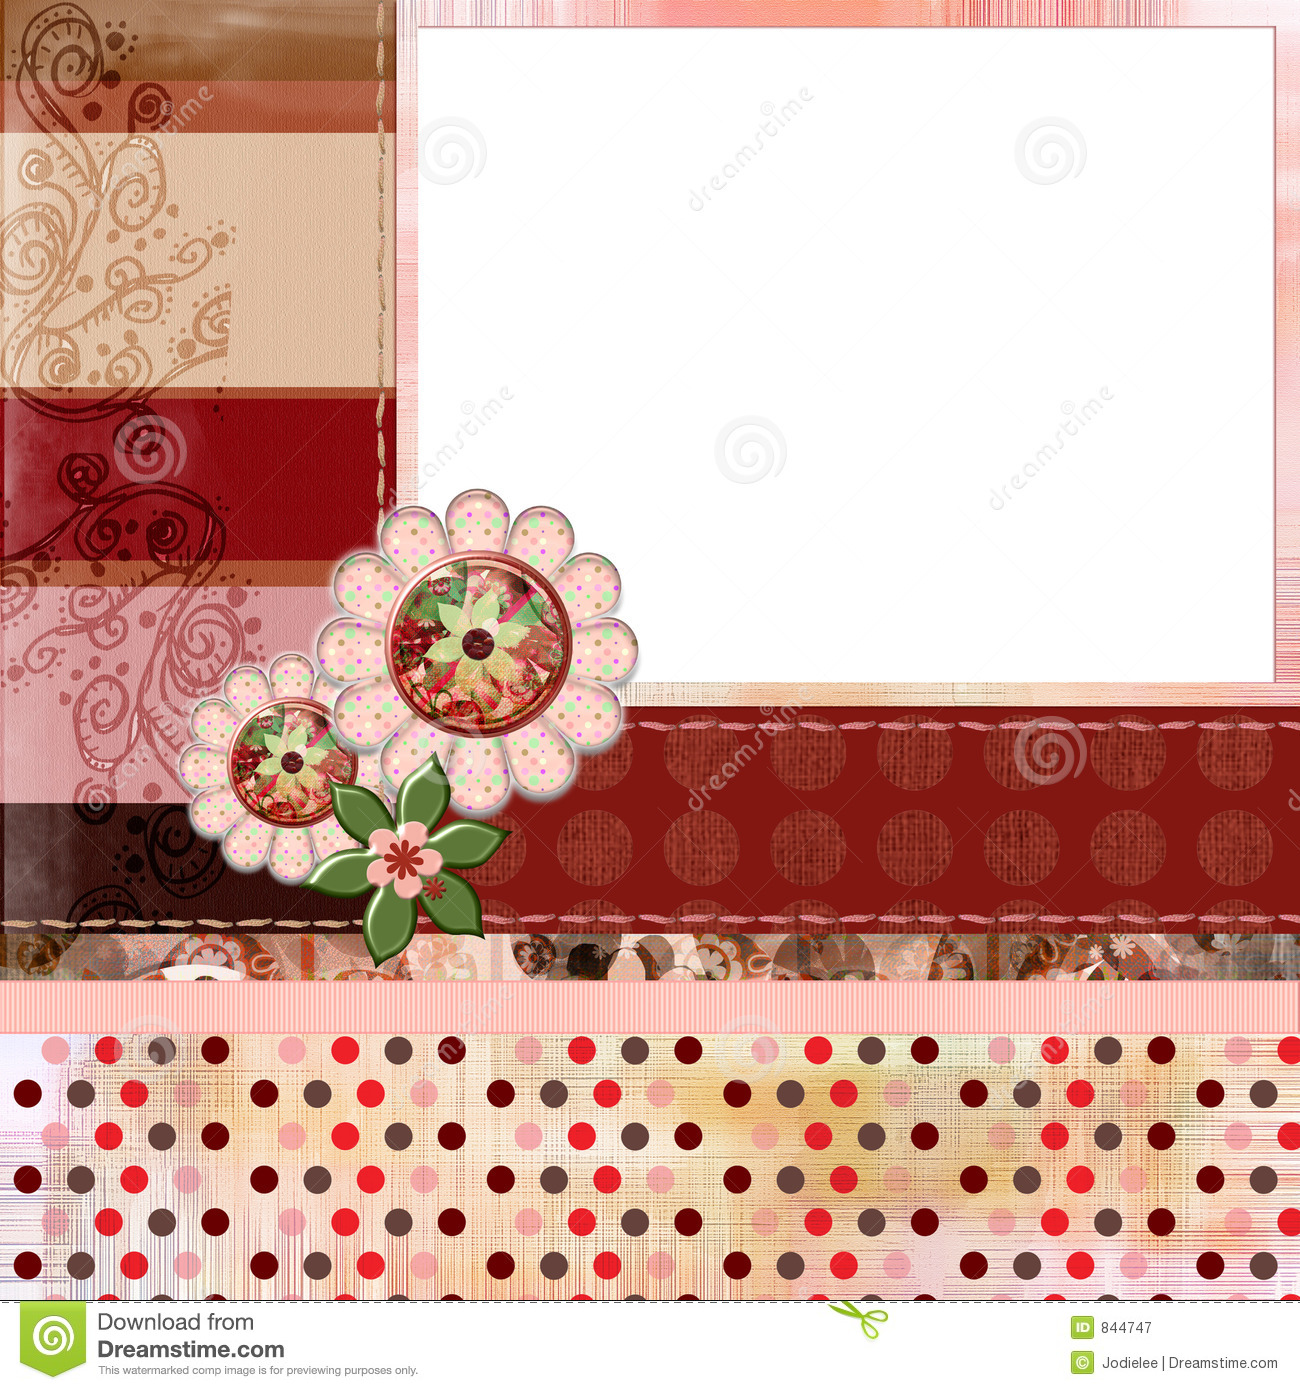 Scrapbook ideas layouts free - Bohemian Gypsy Style Scrapbook Album Page Layout 8x8 Inches Royalty Free Stock Photography